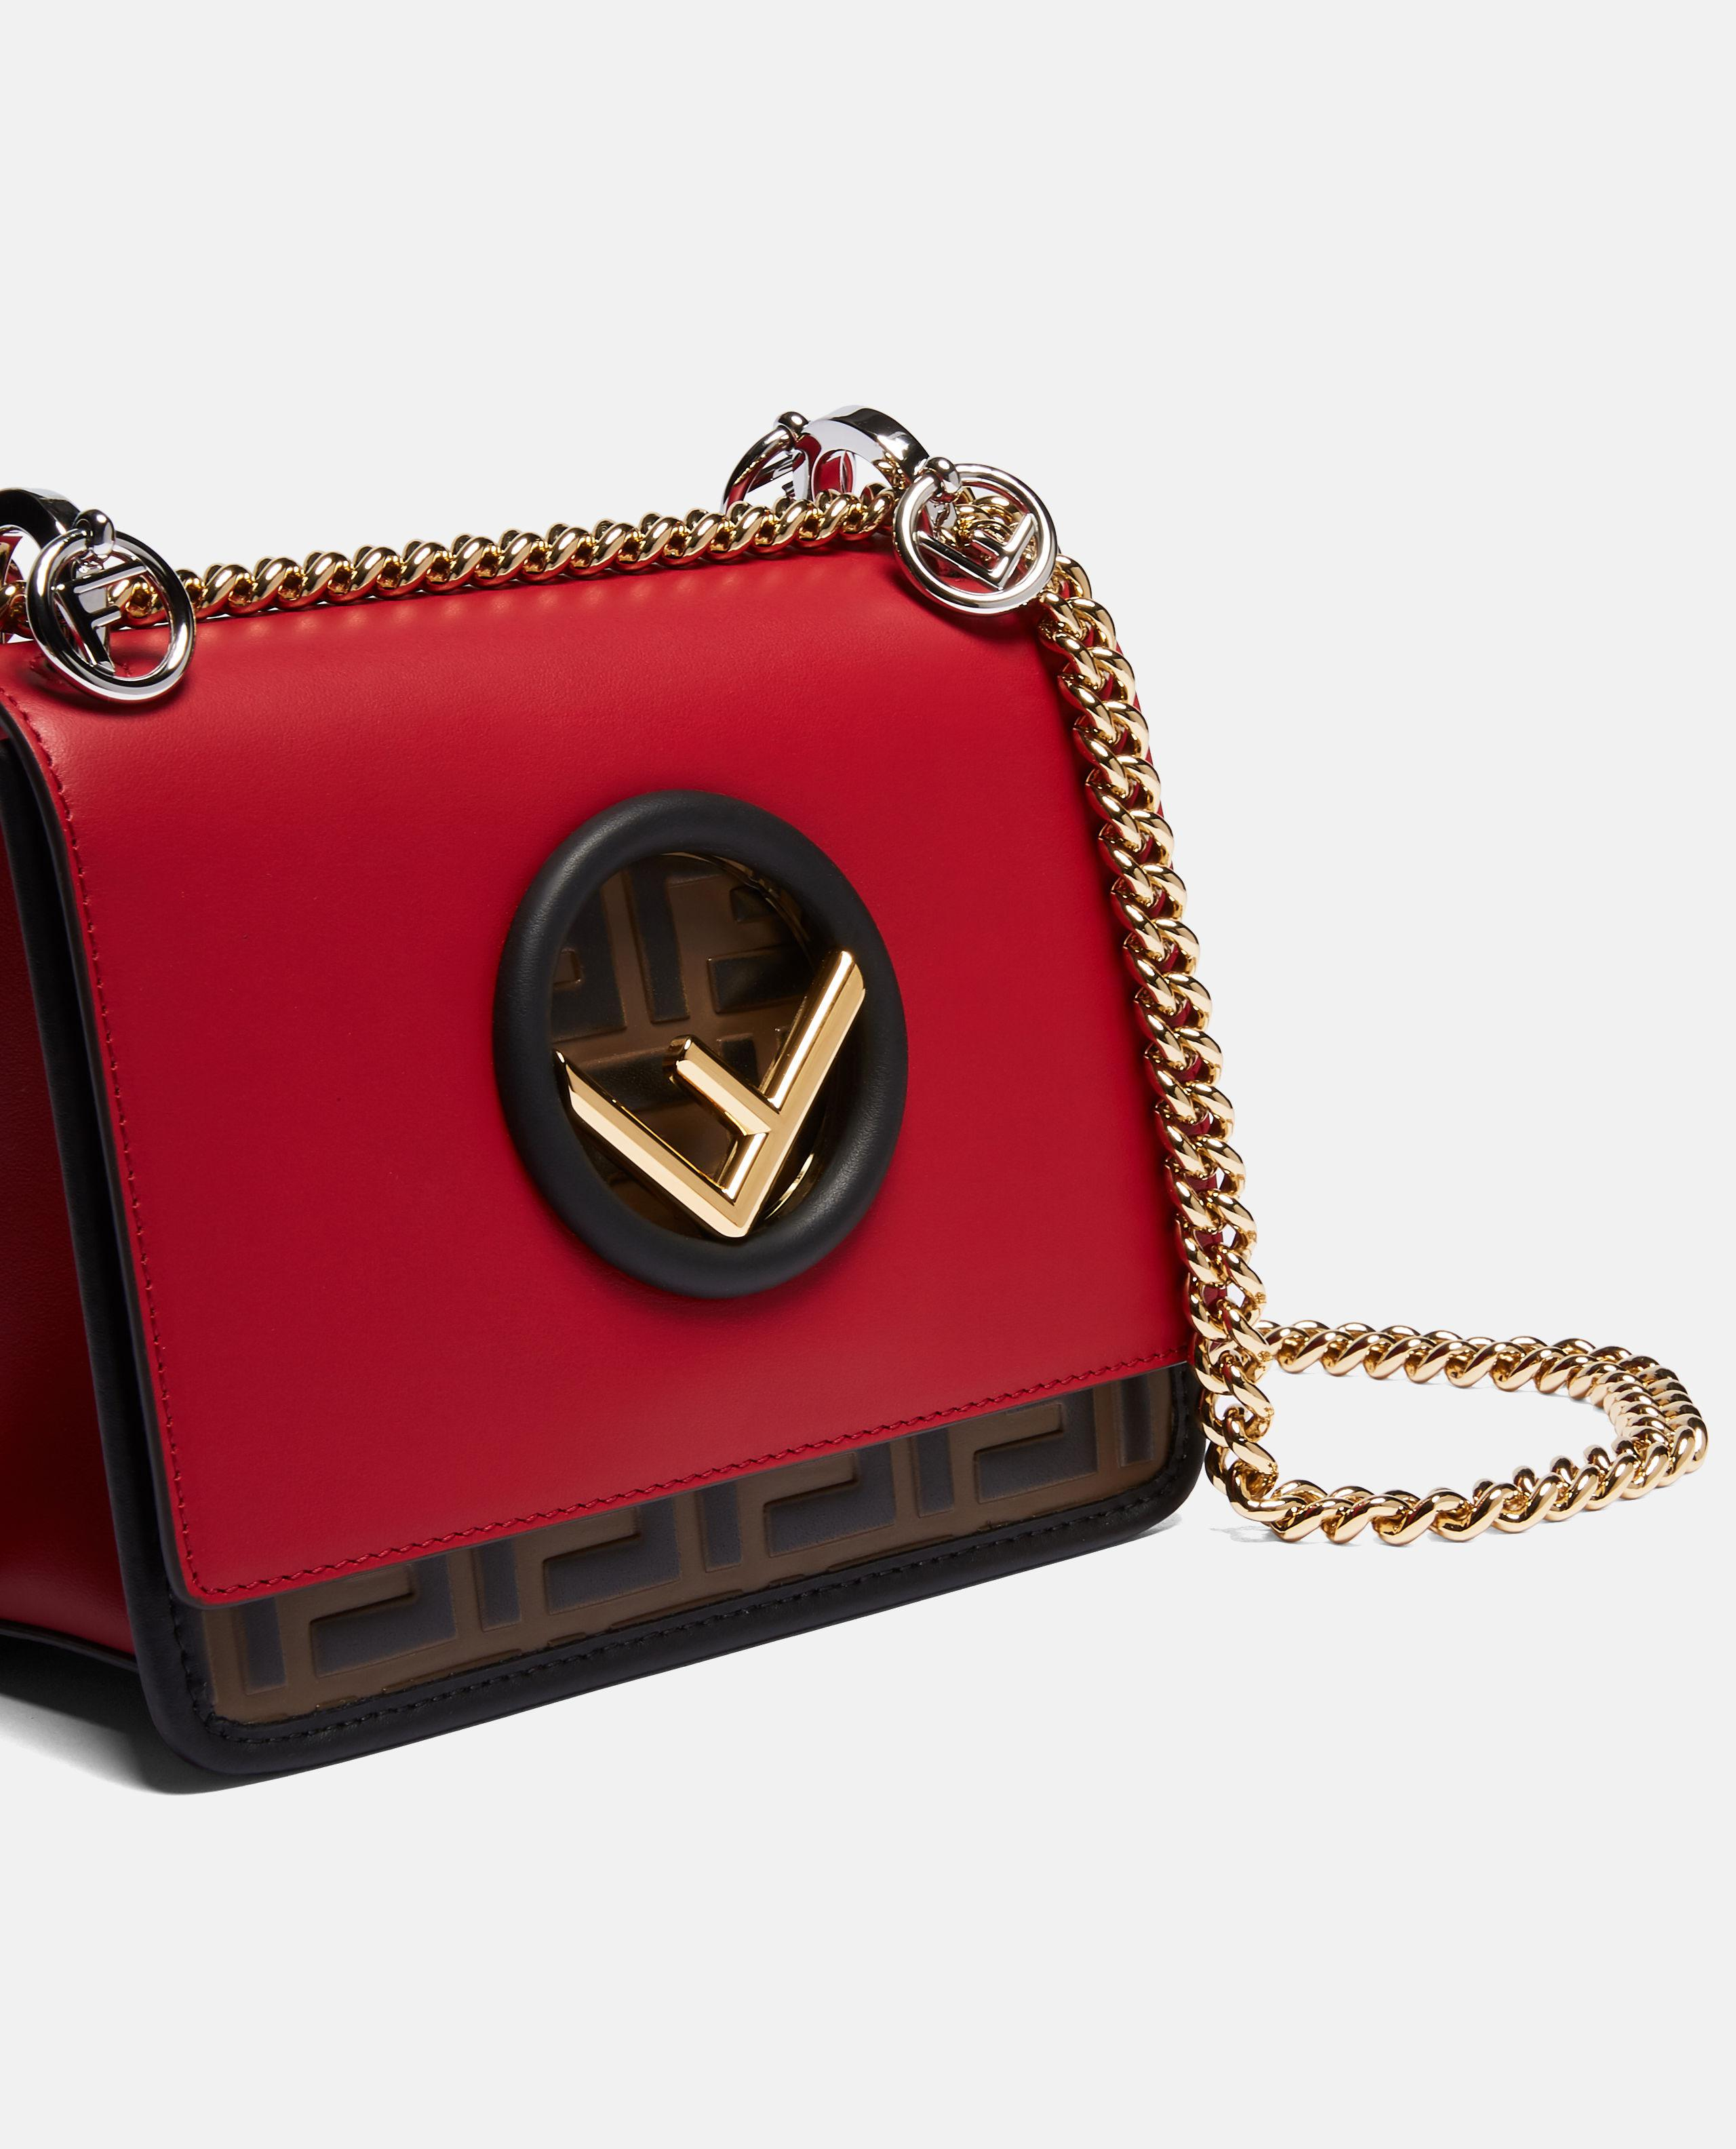 92f6fd65bf04 Fendi Kan I Small Bag in Red - Save 32% - Lyst